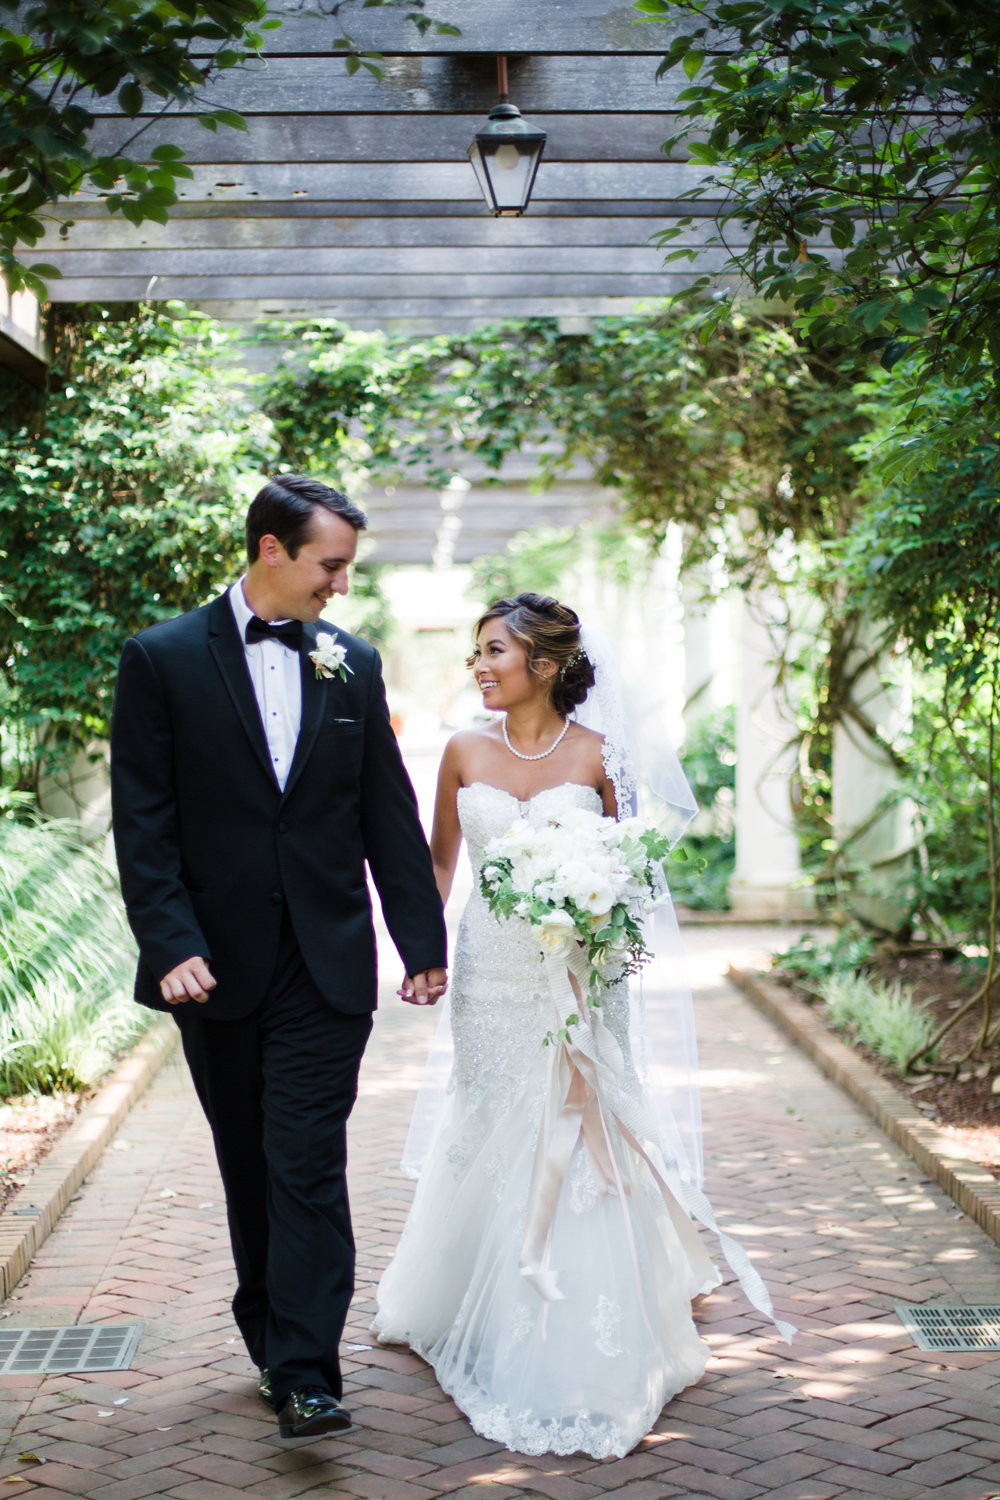 Daniel Stowe Botanical Garden - The Graceful Host - Charlotte, North Carolina Wedding